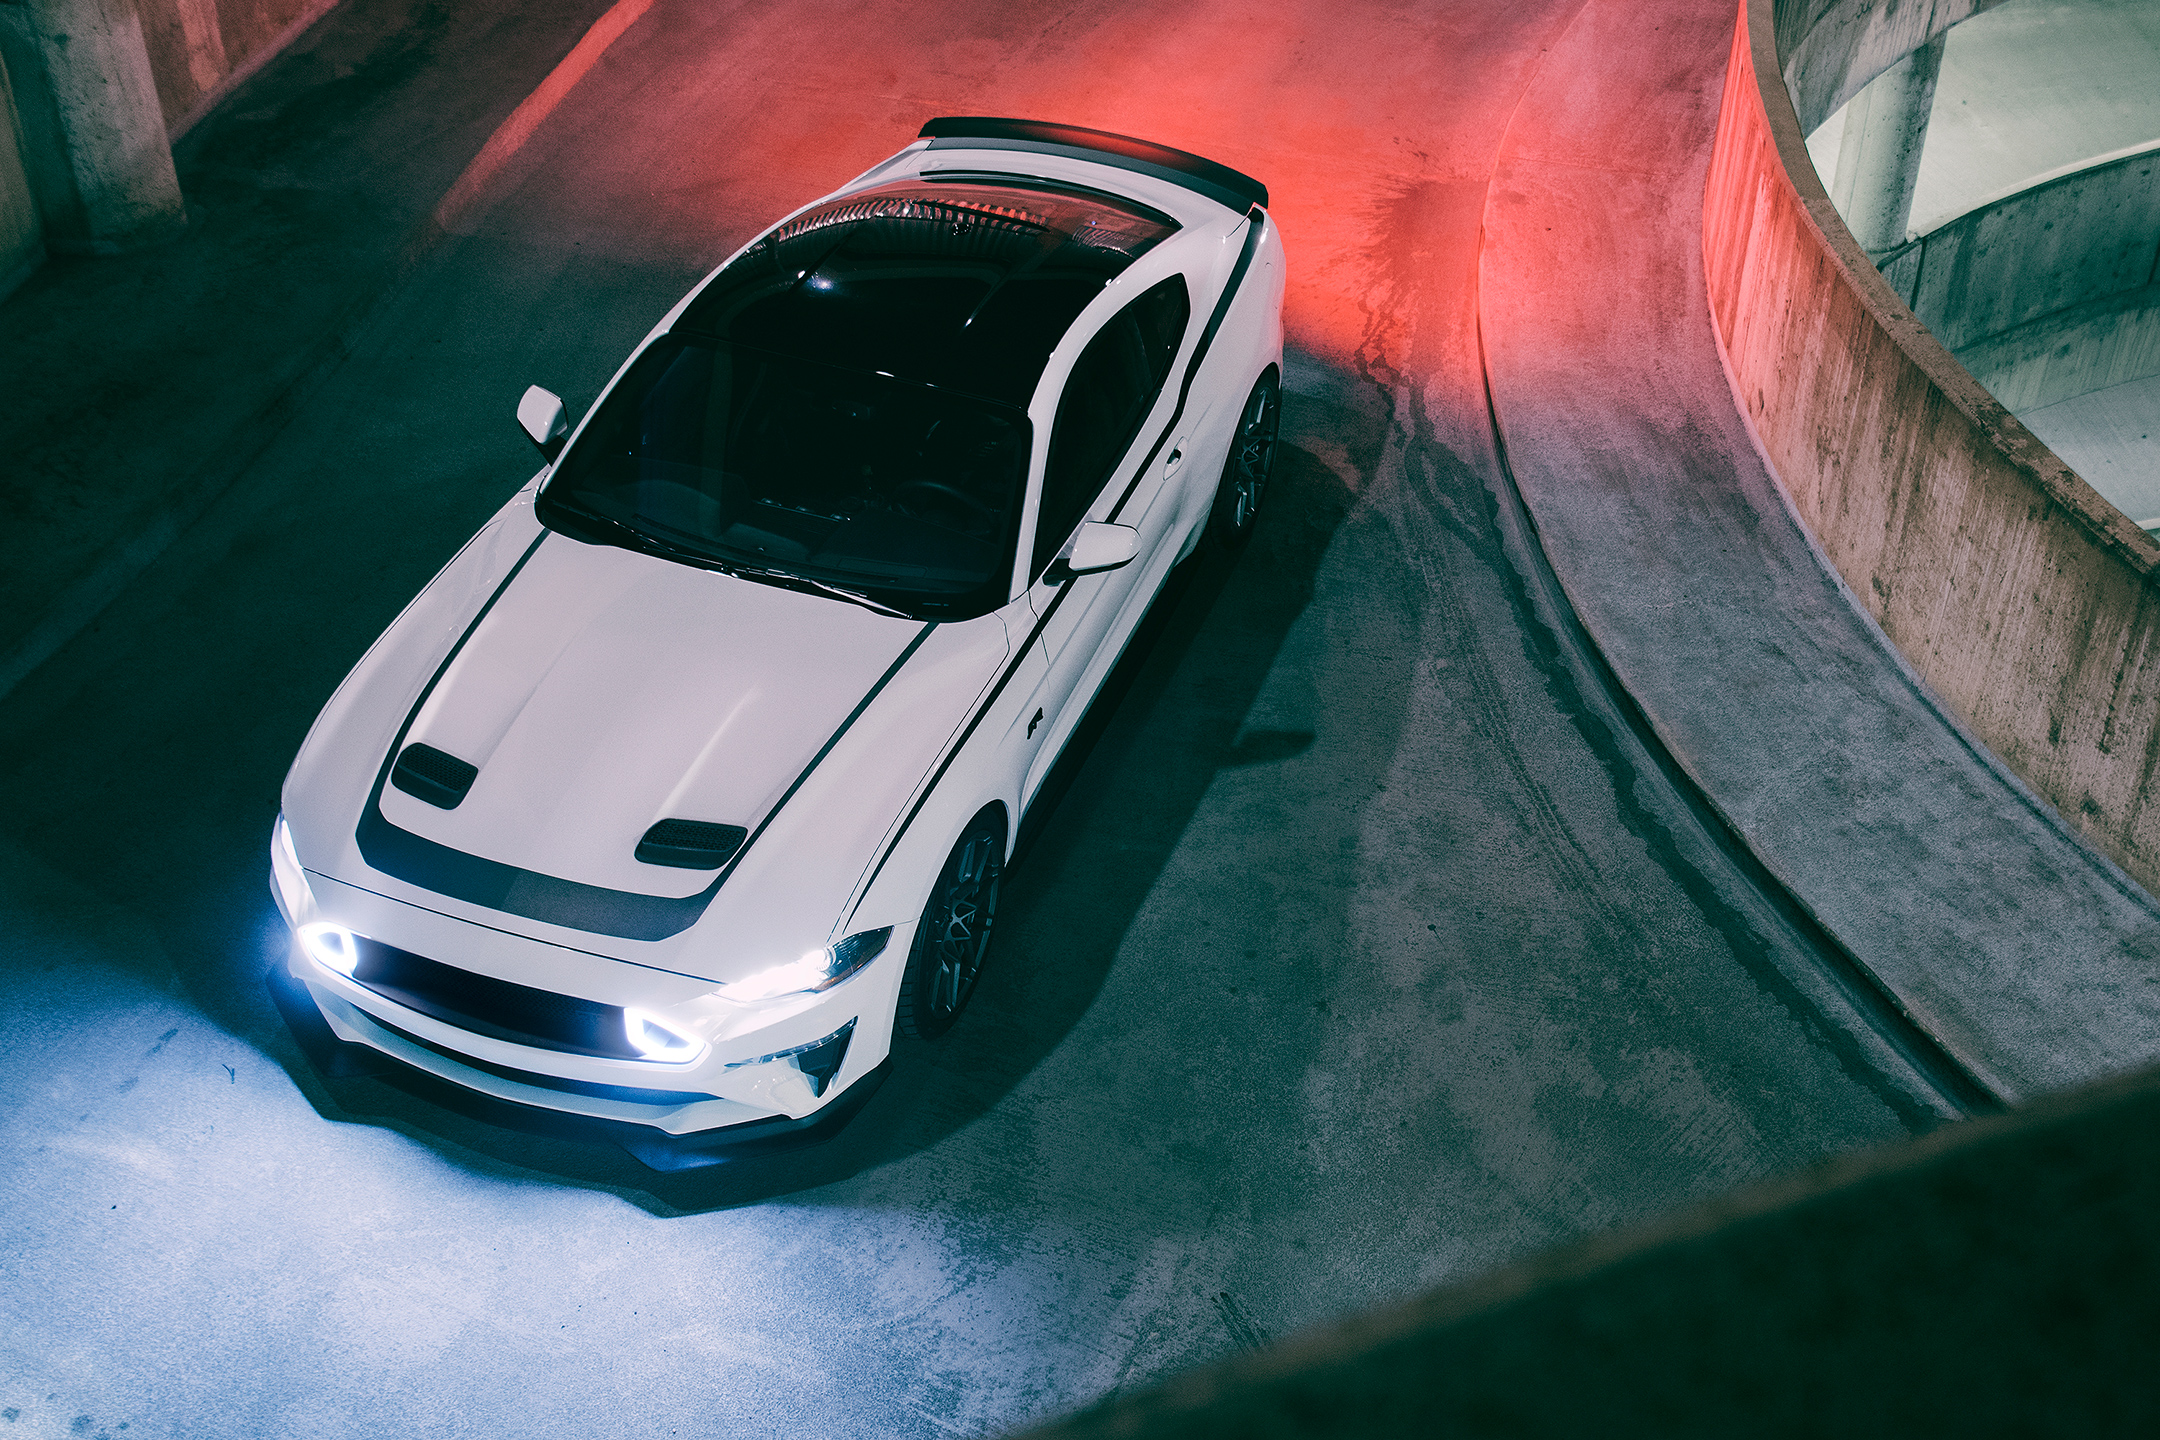 Mustang rtr ford mustang 2018 est ready to rock w v8 700hp